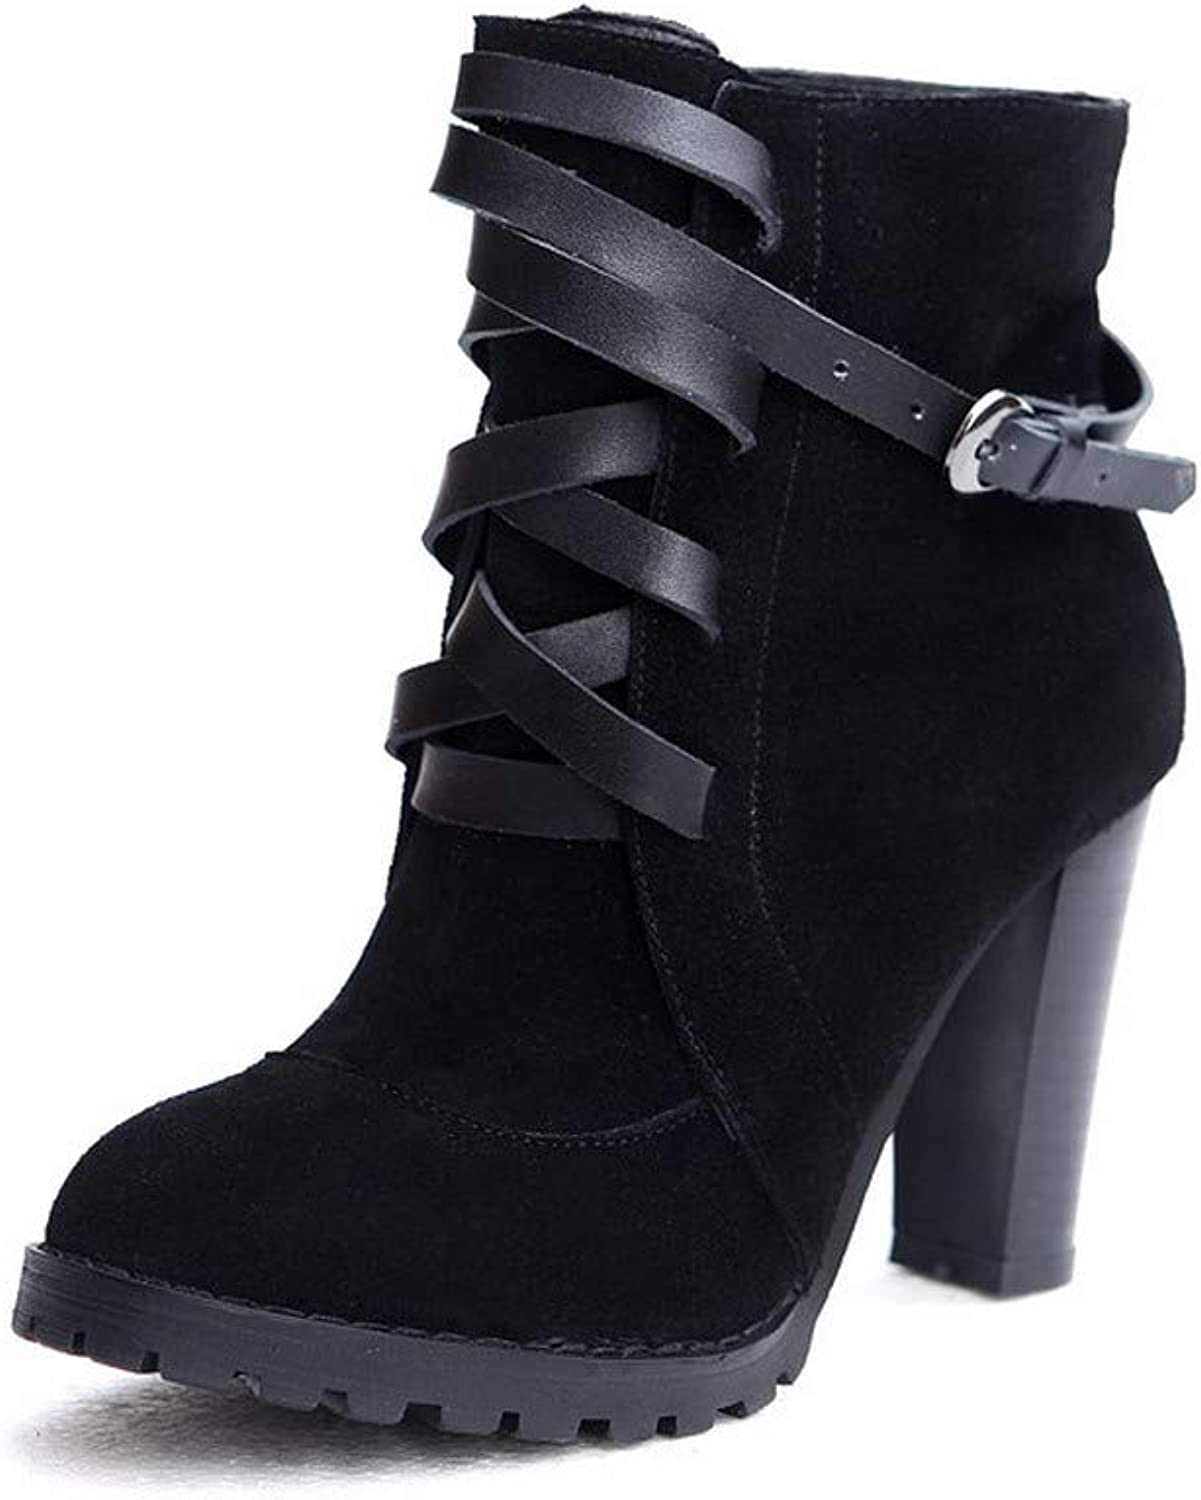 AmoonyFashion Women's Buckle Round-Toe High-Heels Frosted Low-Top Boots, BUTXT019322